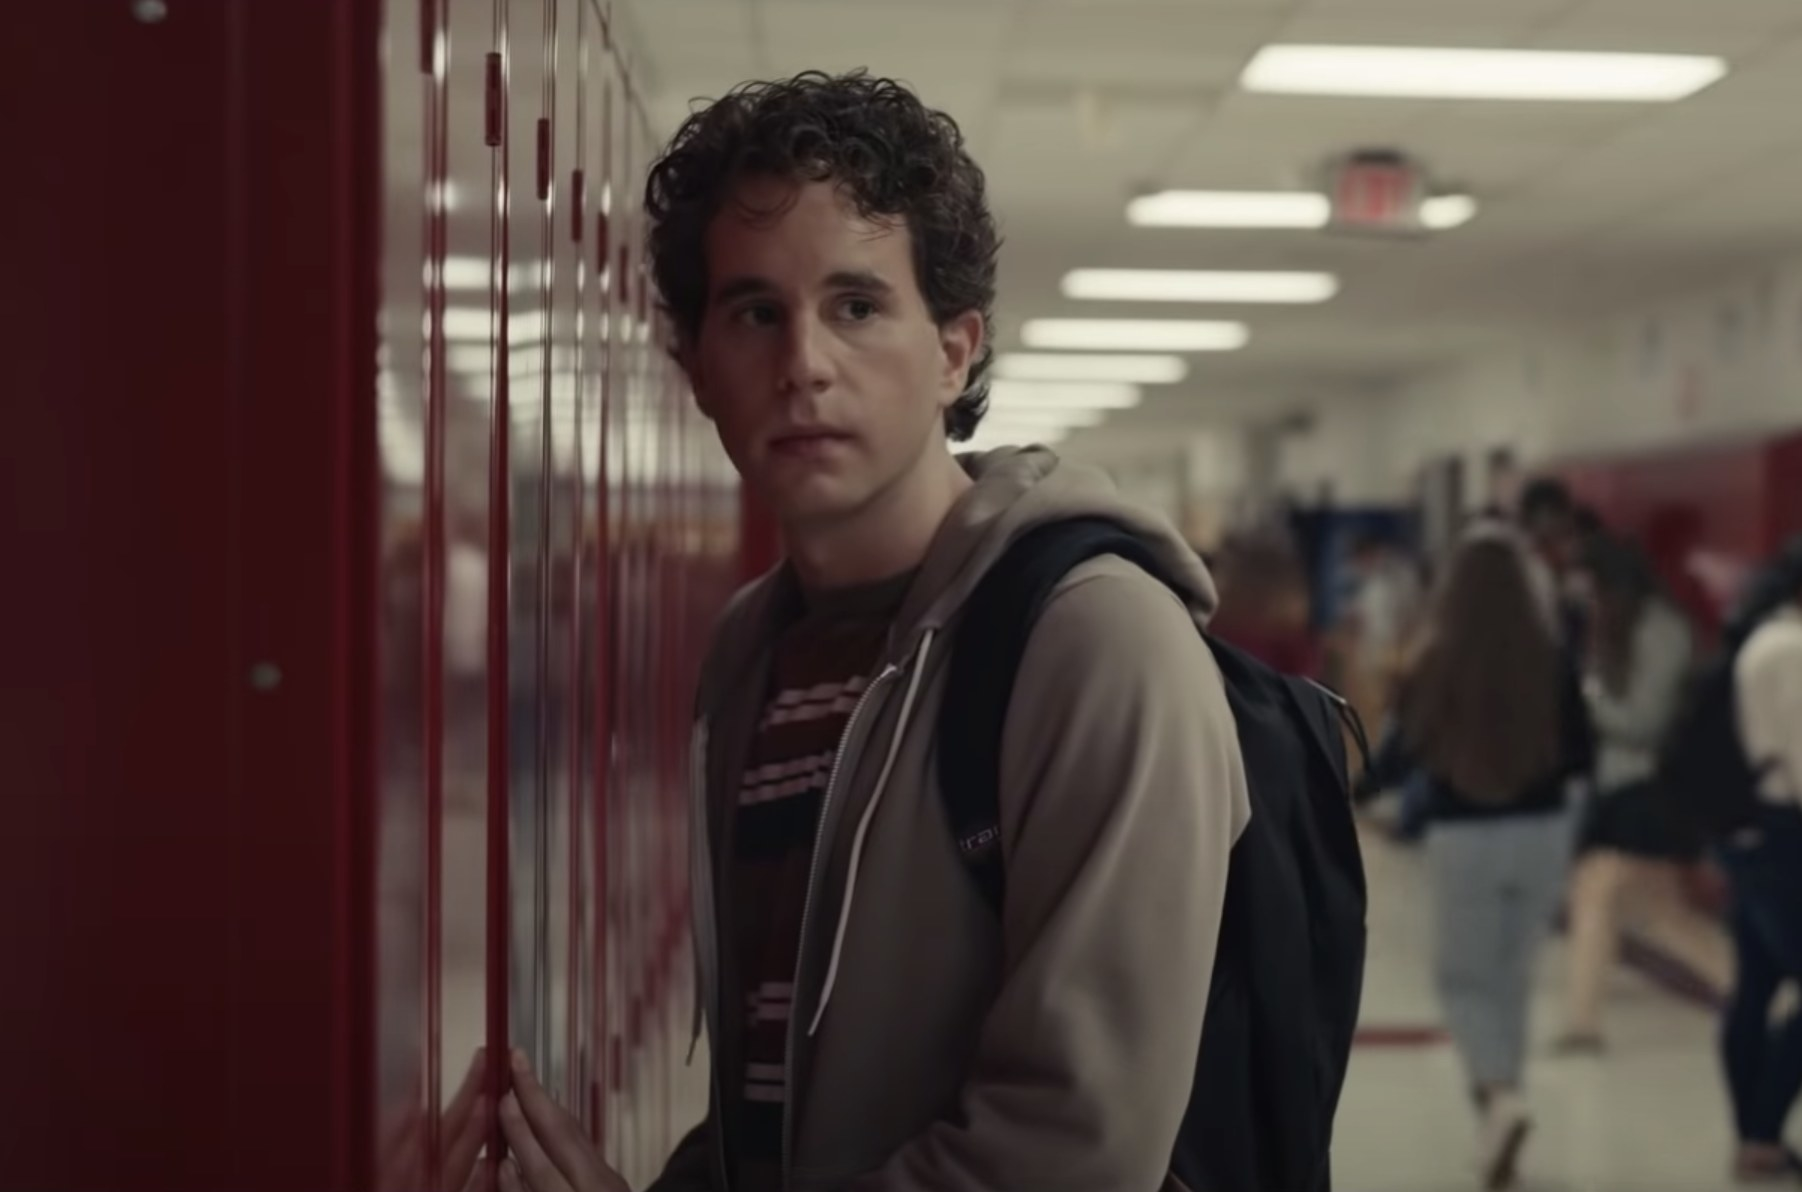 Ben stands by lockers in the movie